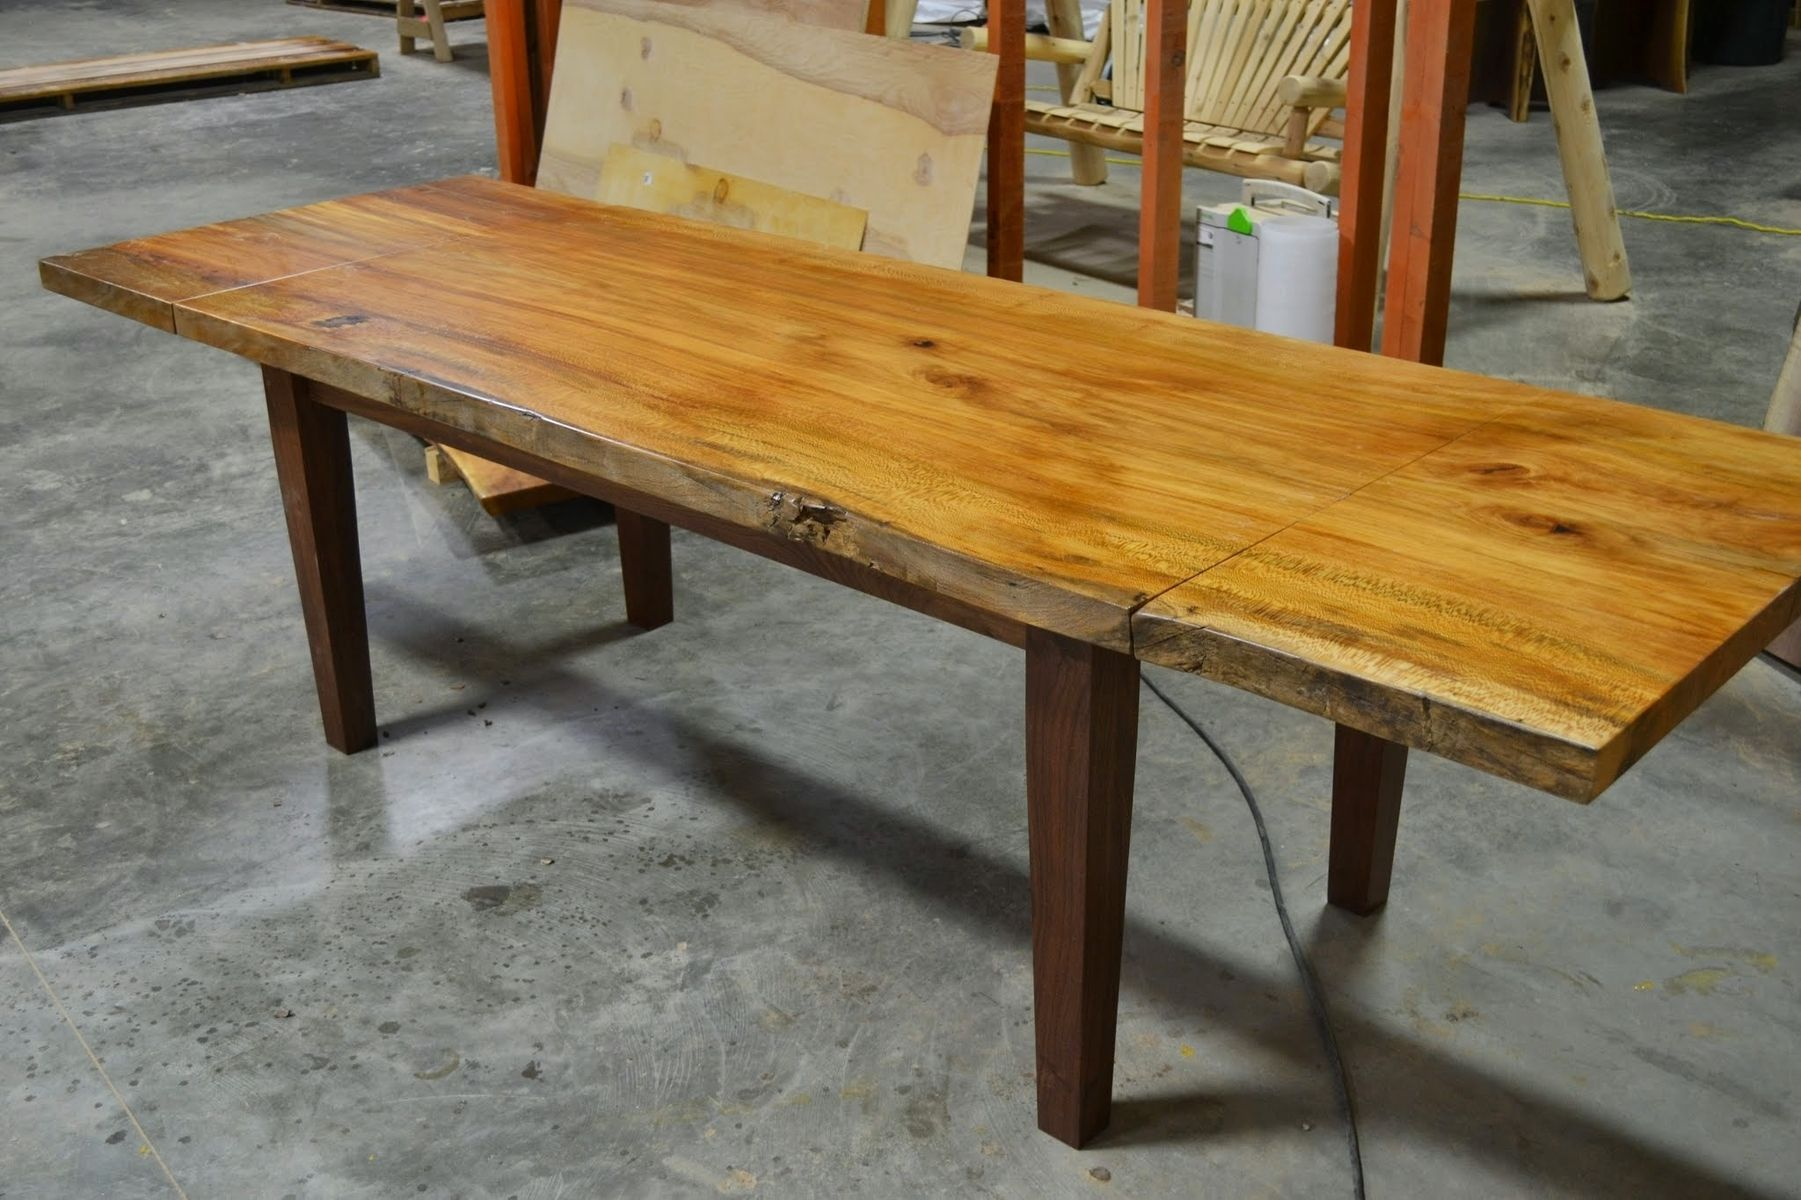 Dining Table With Extensions By Corey Morgan Wood Works CustomMade